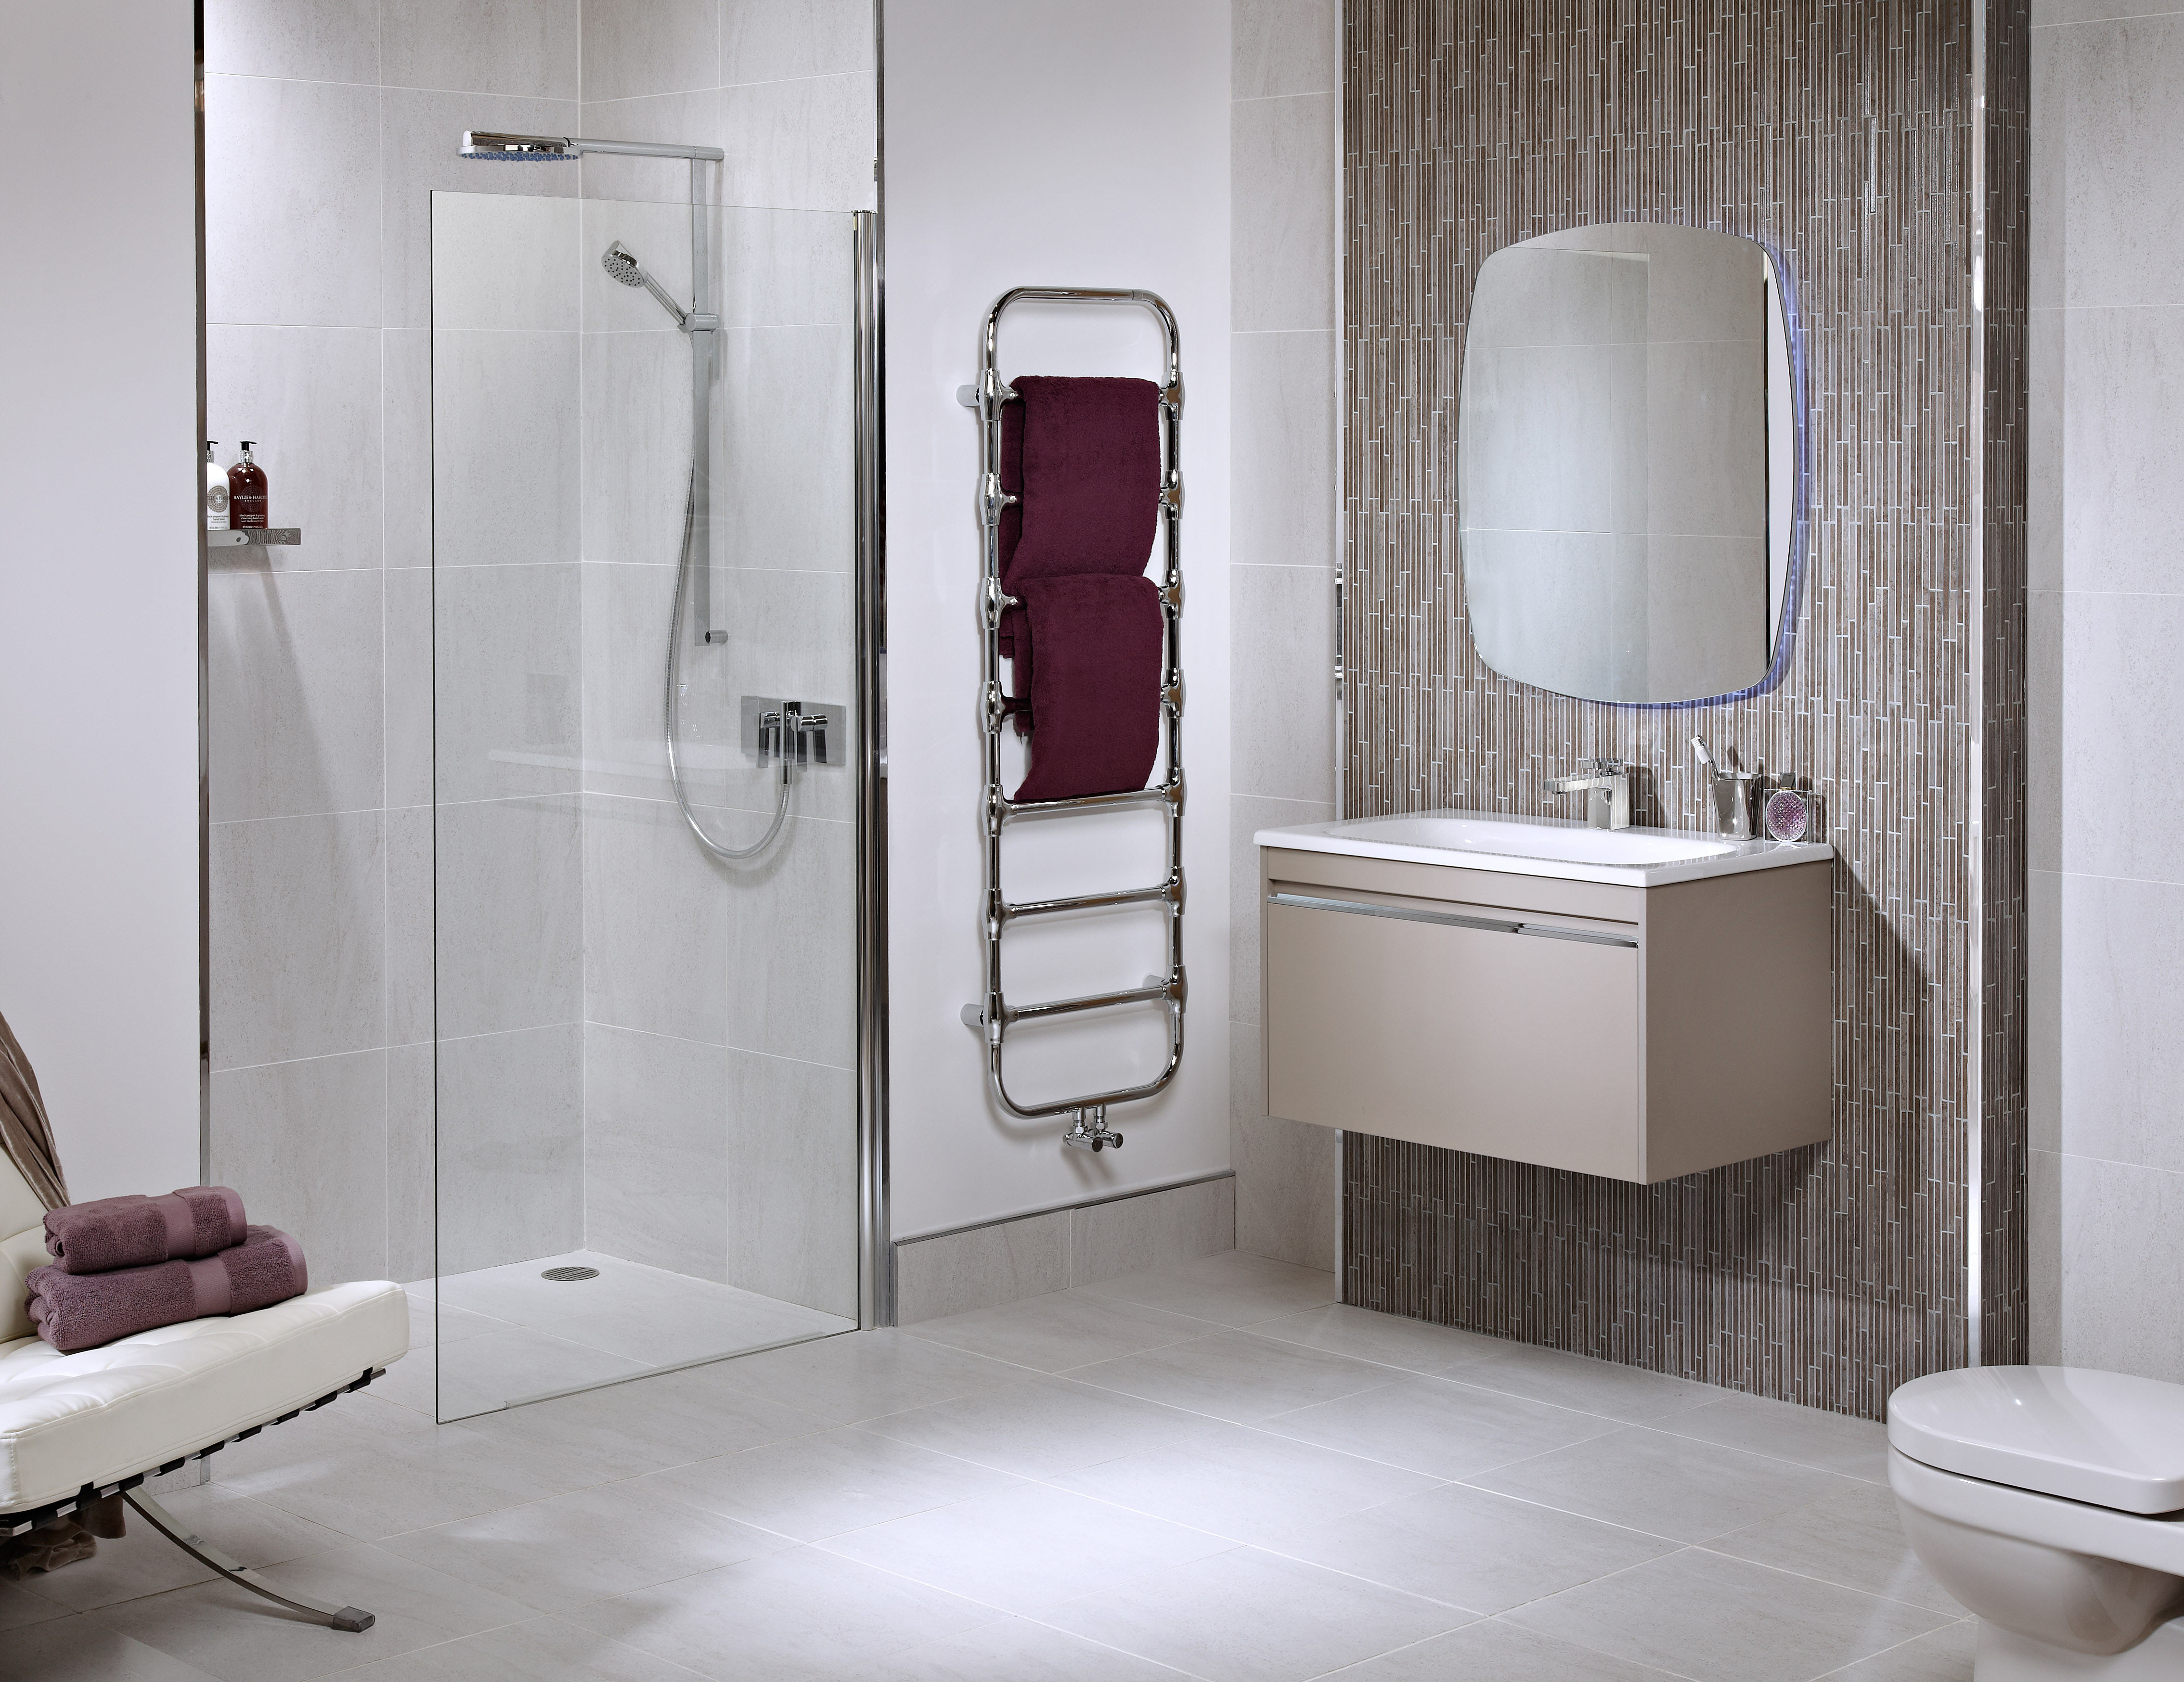 Wet rooms and showers bathroom design and supply fitted bathrooms tiles wet rooms - Bathroom design ...